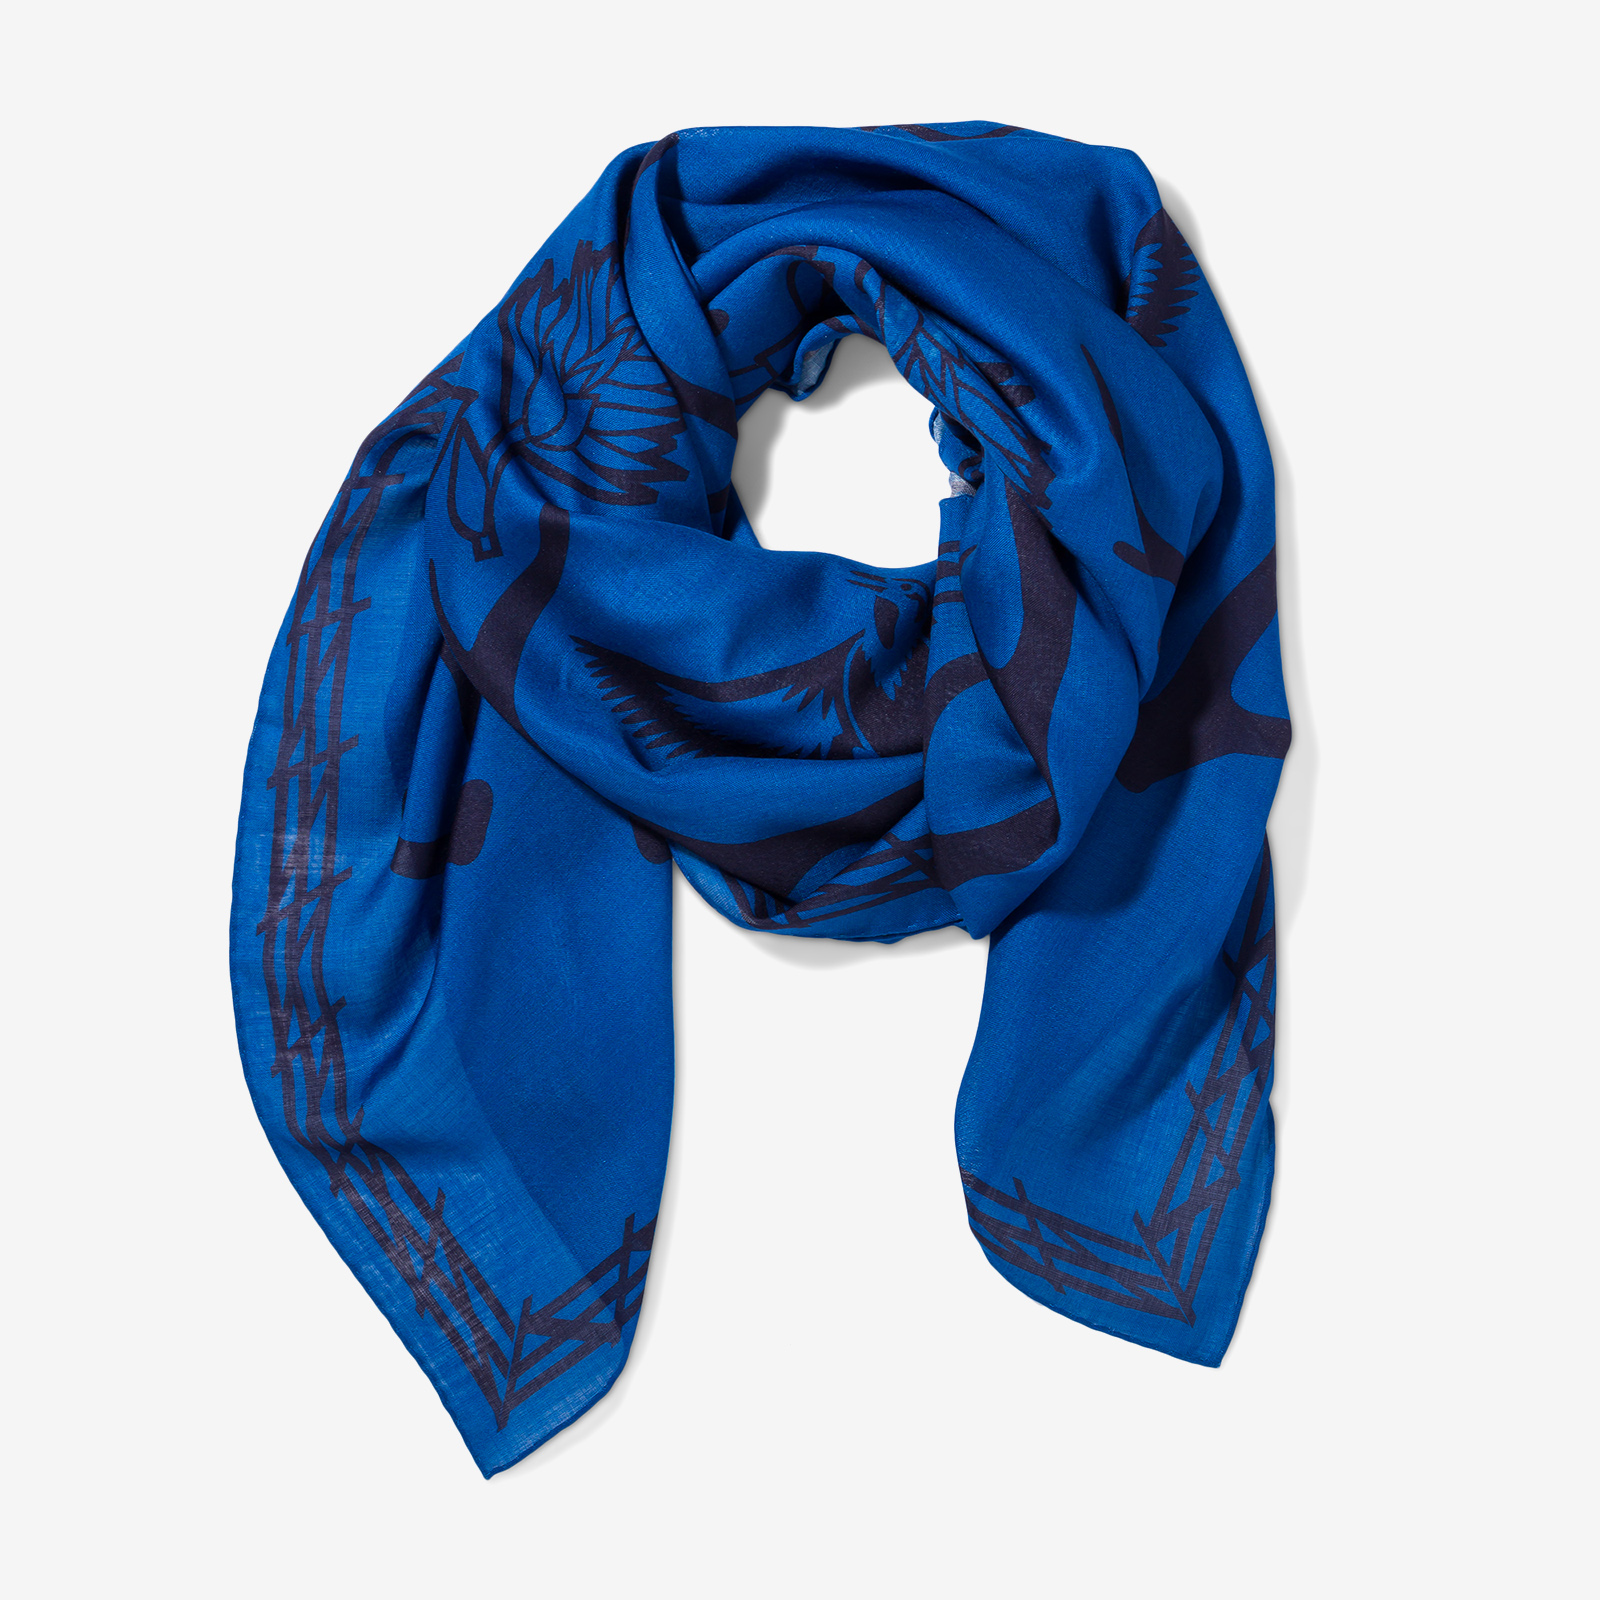 Scarf product picture